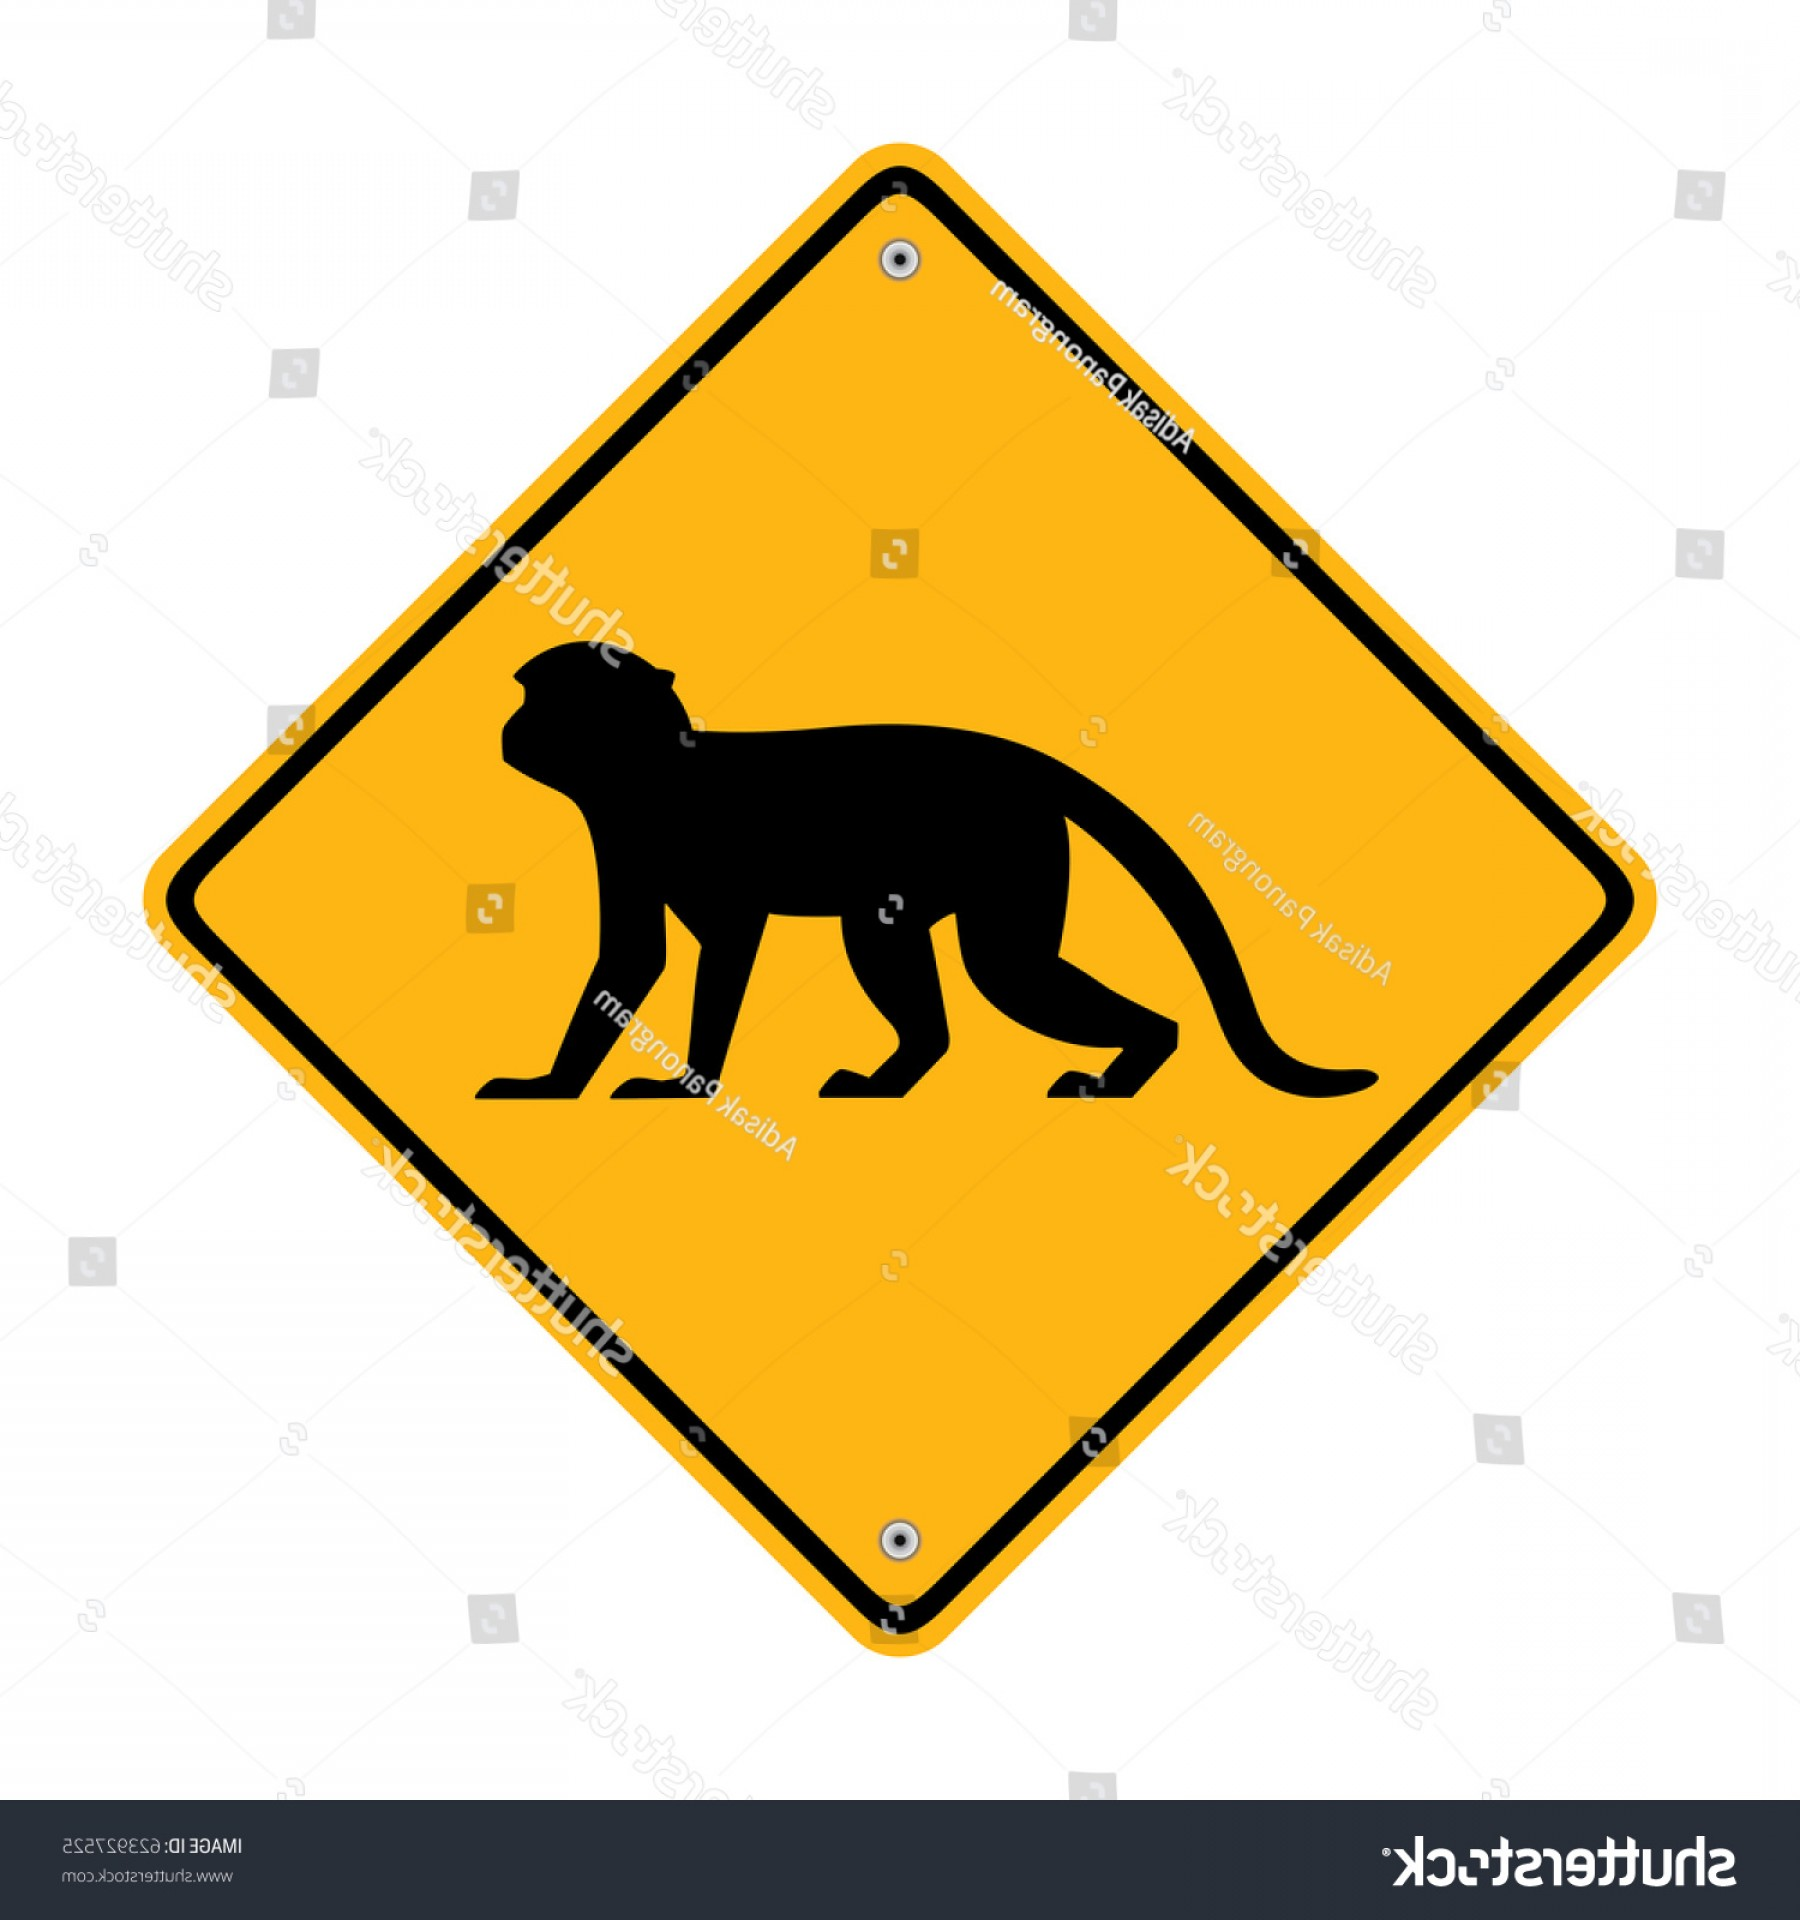 Road Sign Silhouette Vector Bear: Monkey Sign Road Symbol Illustration